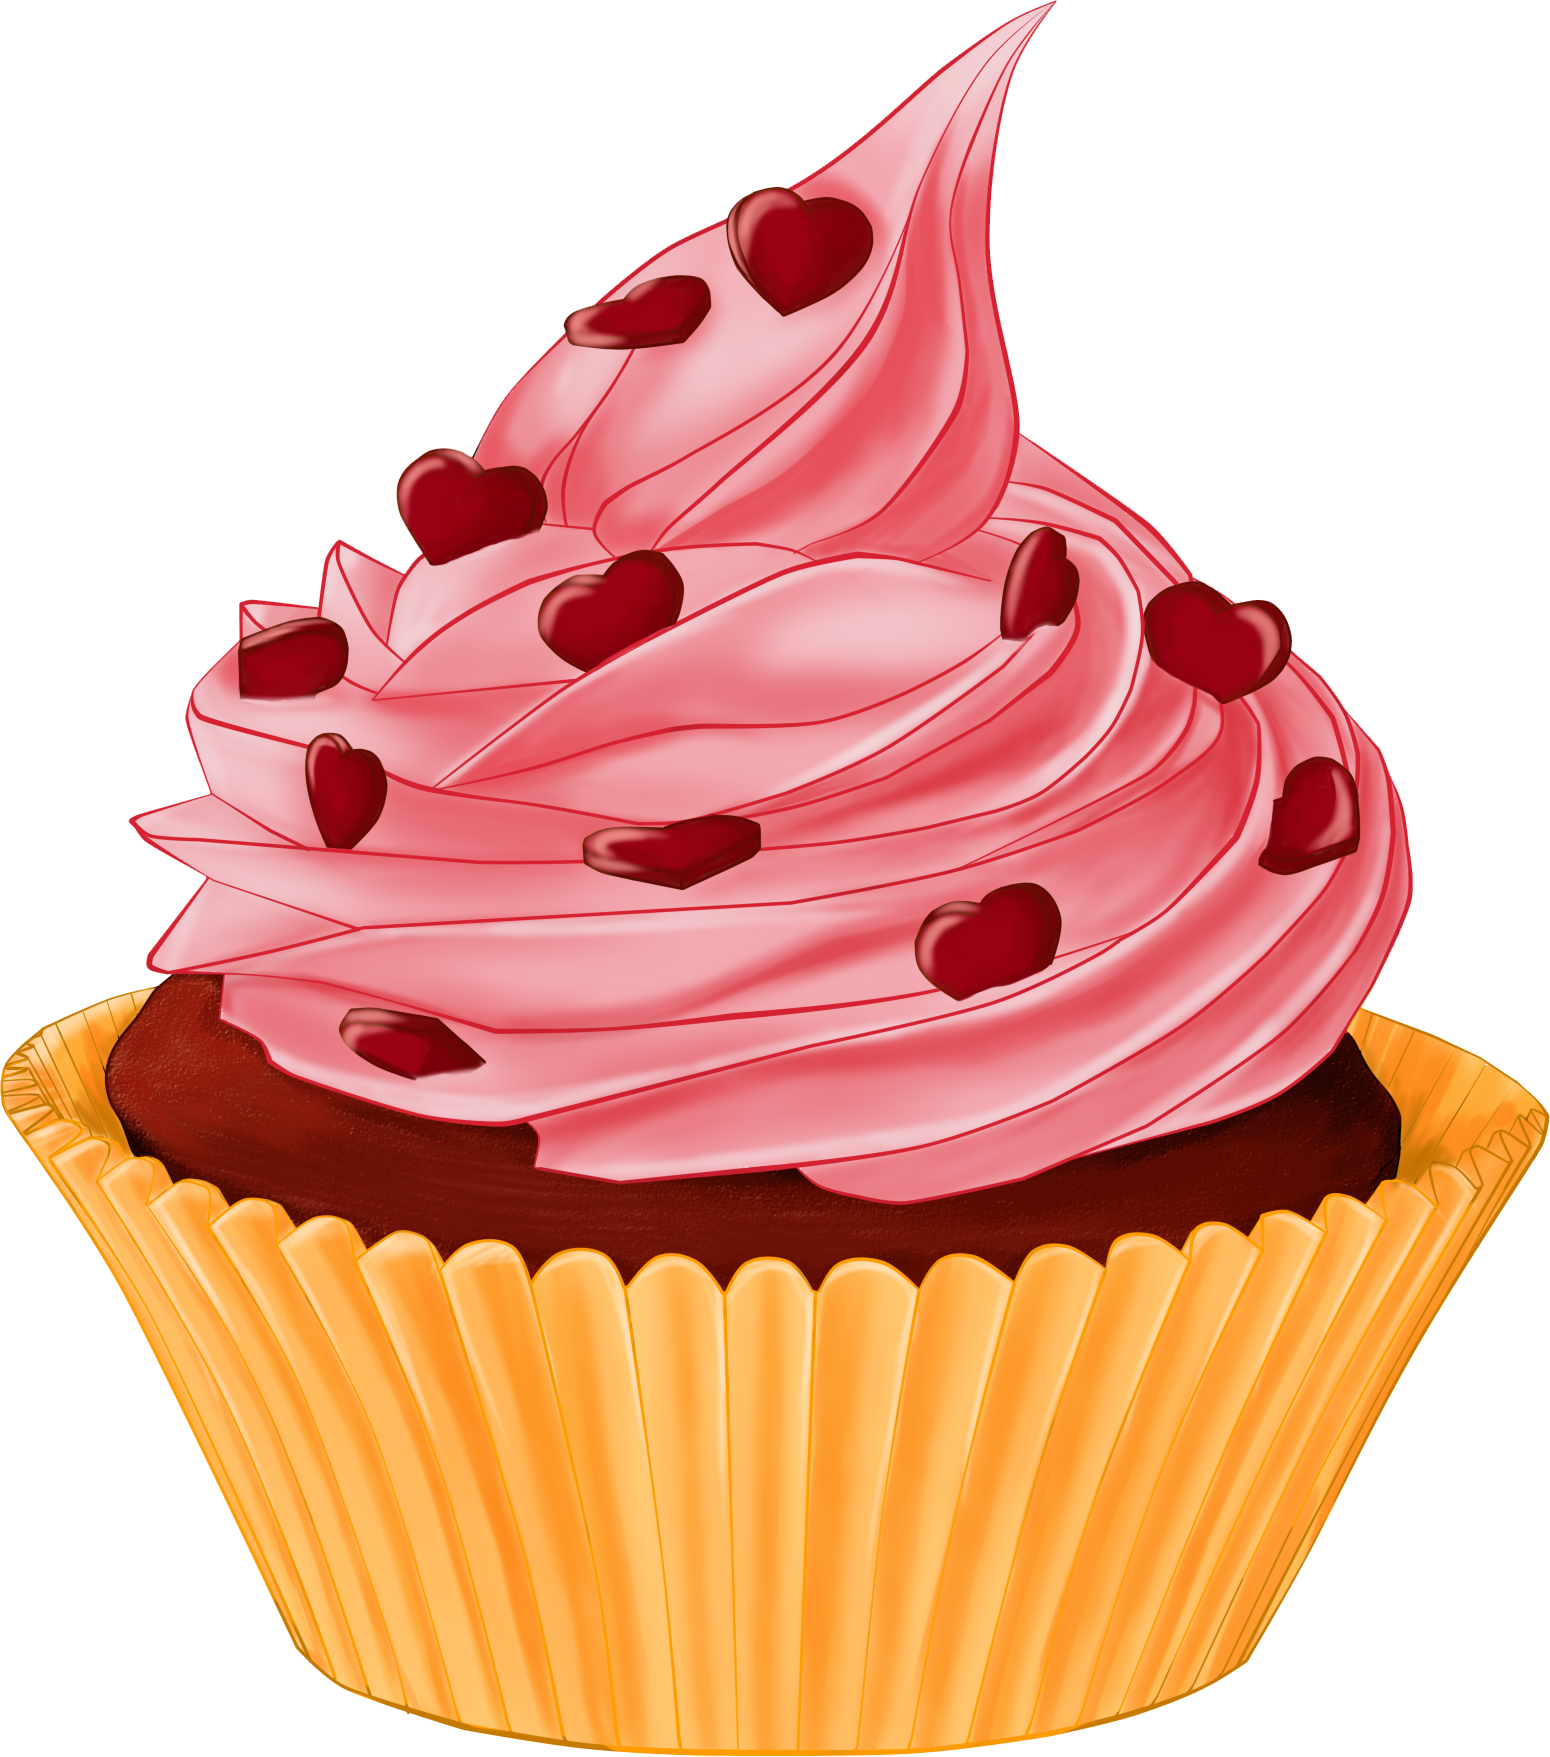 Cupcakes PNG HD - 126958